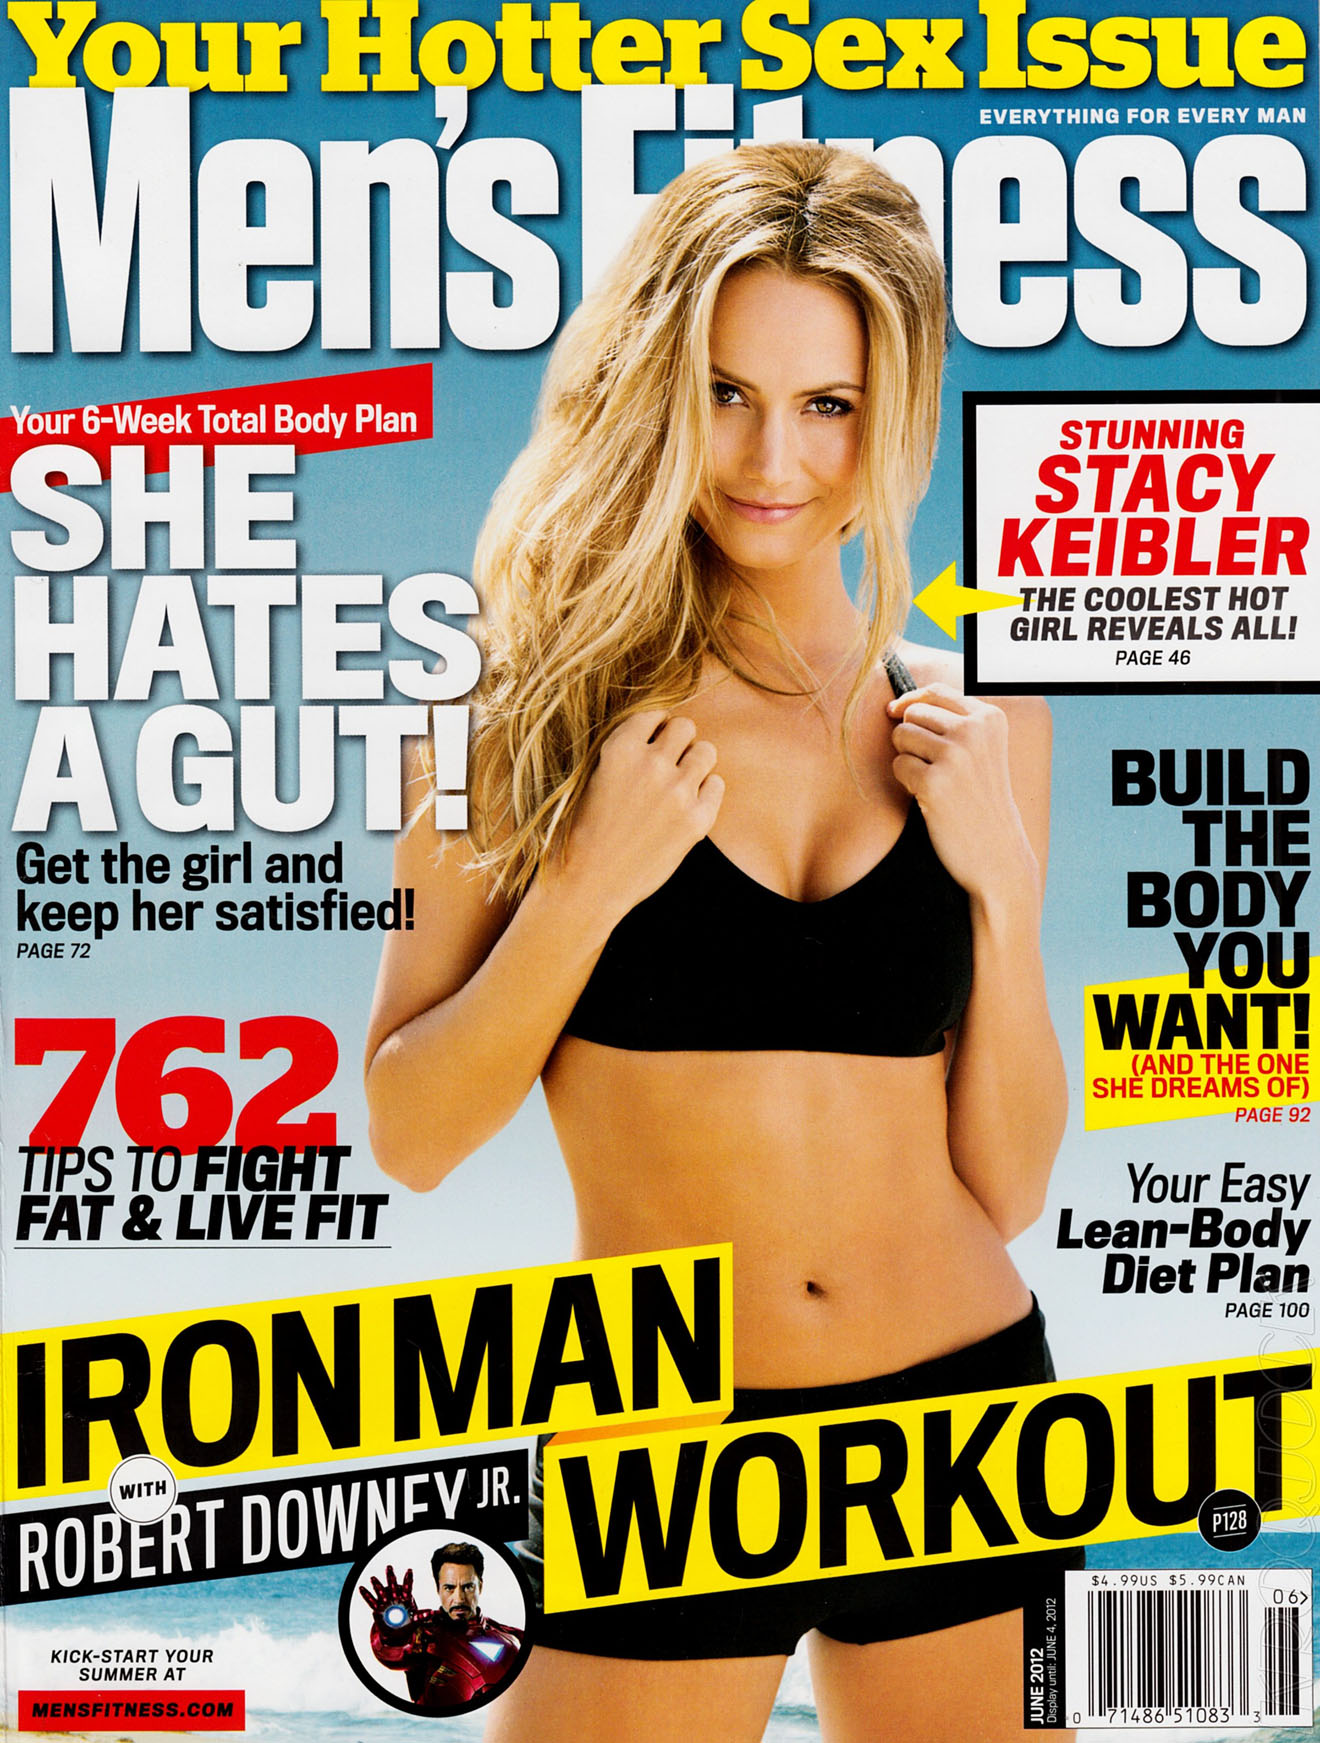 Stacy Keibler's Hotness Is Back For Men's Fitness